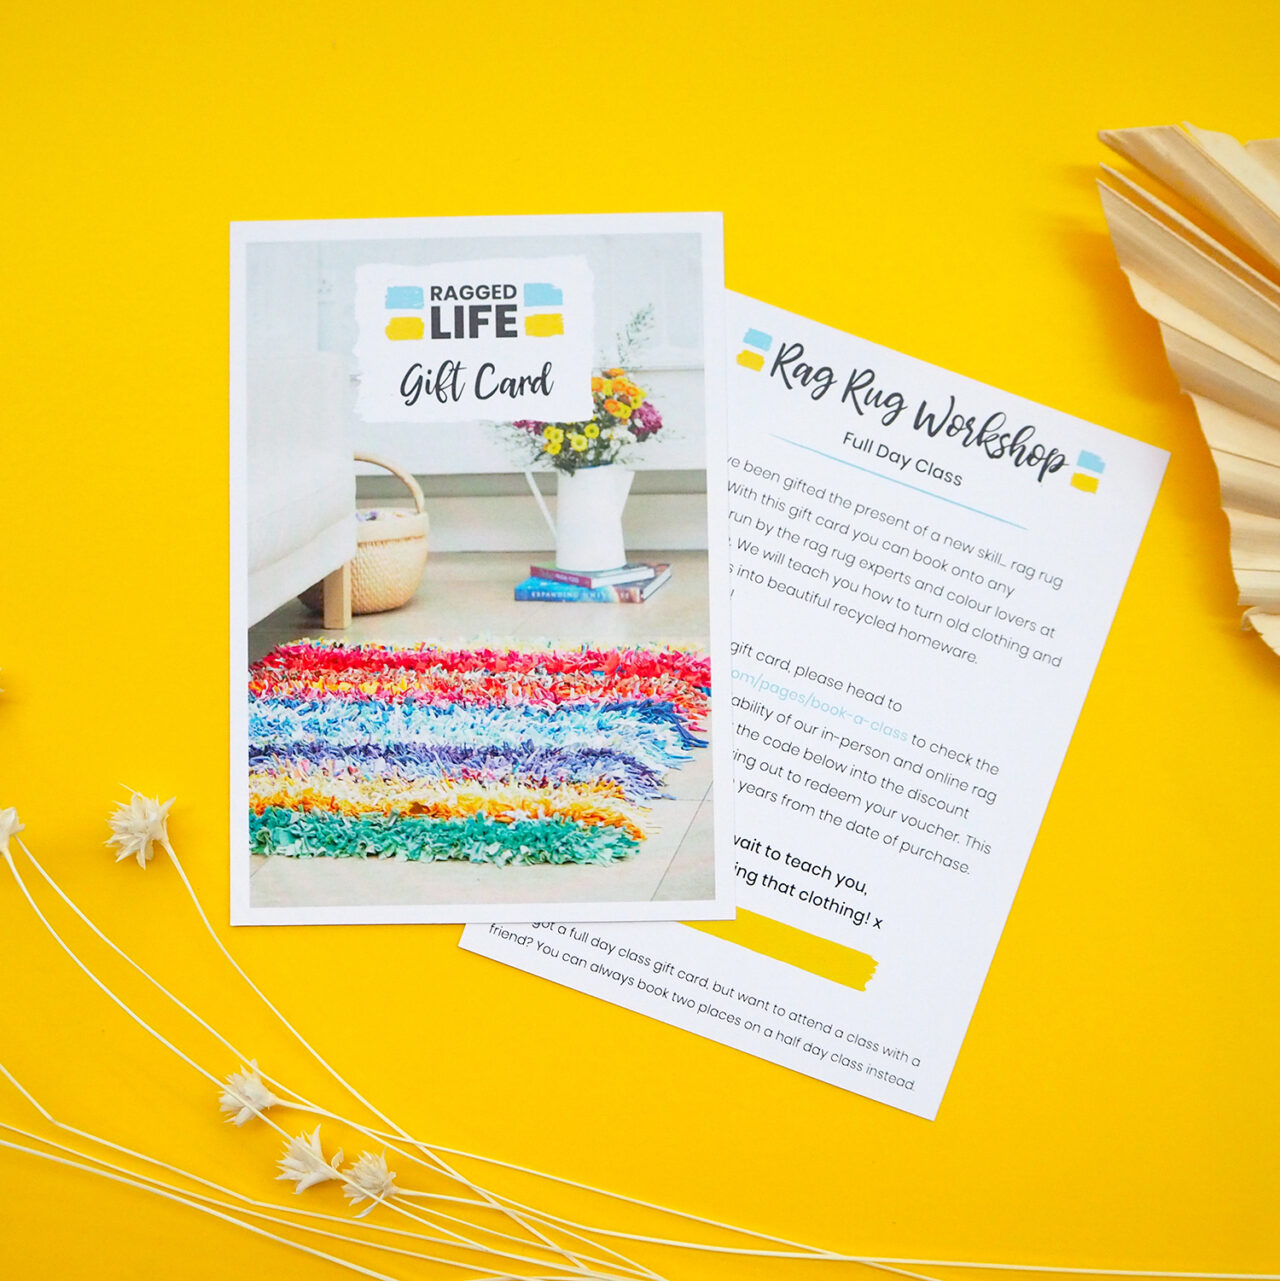 Ragged Life Full Day Workshop Gift Card